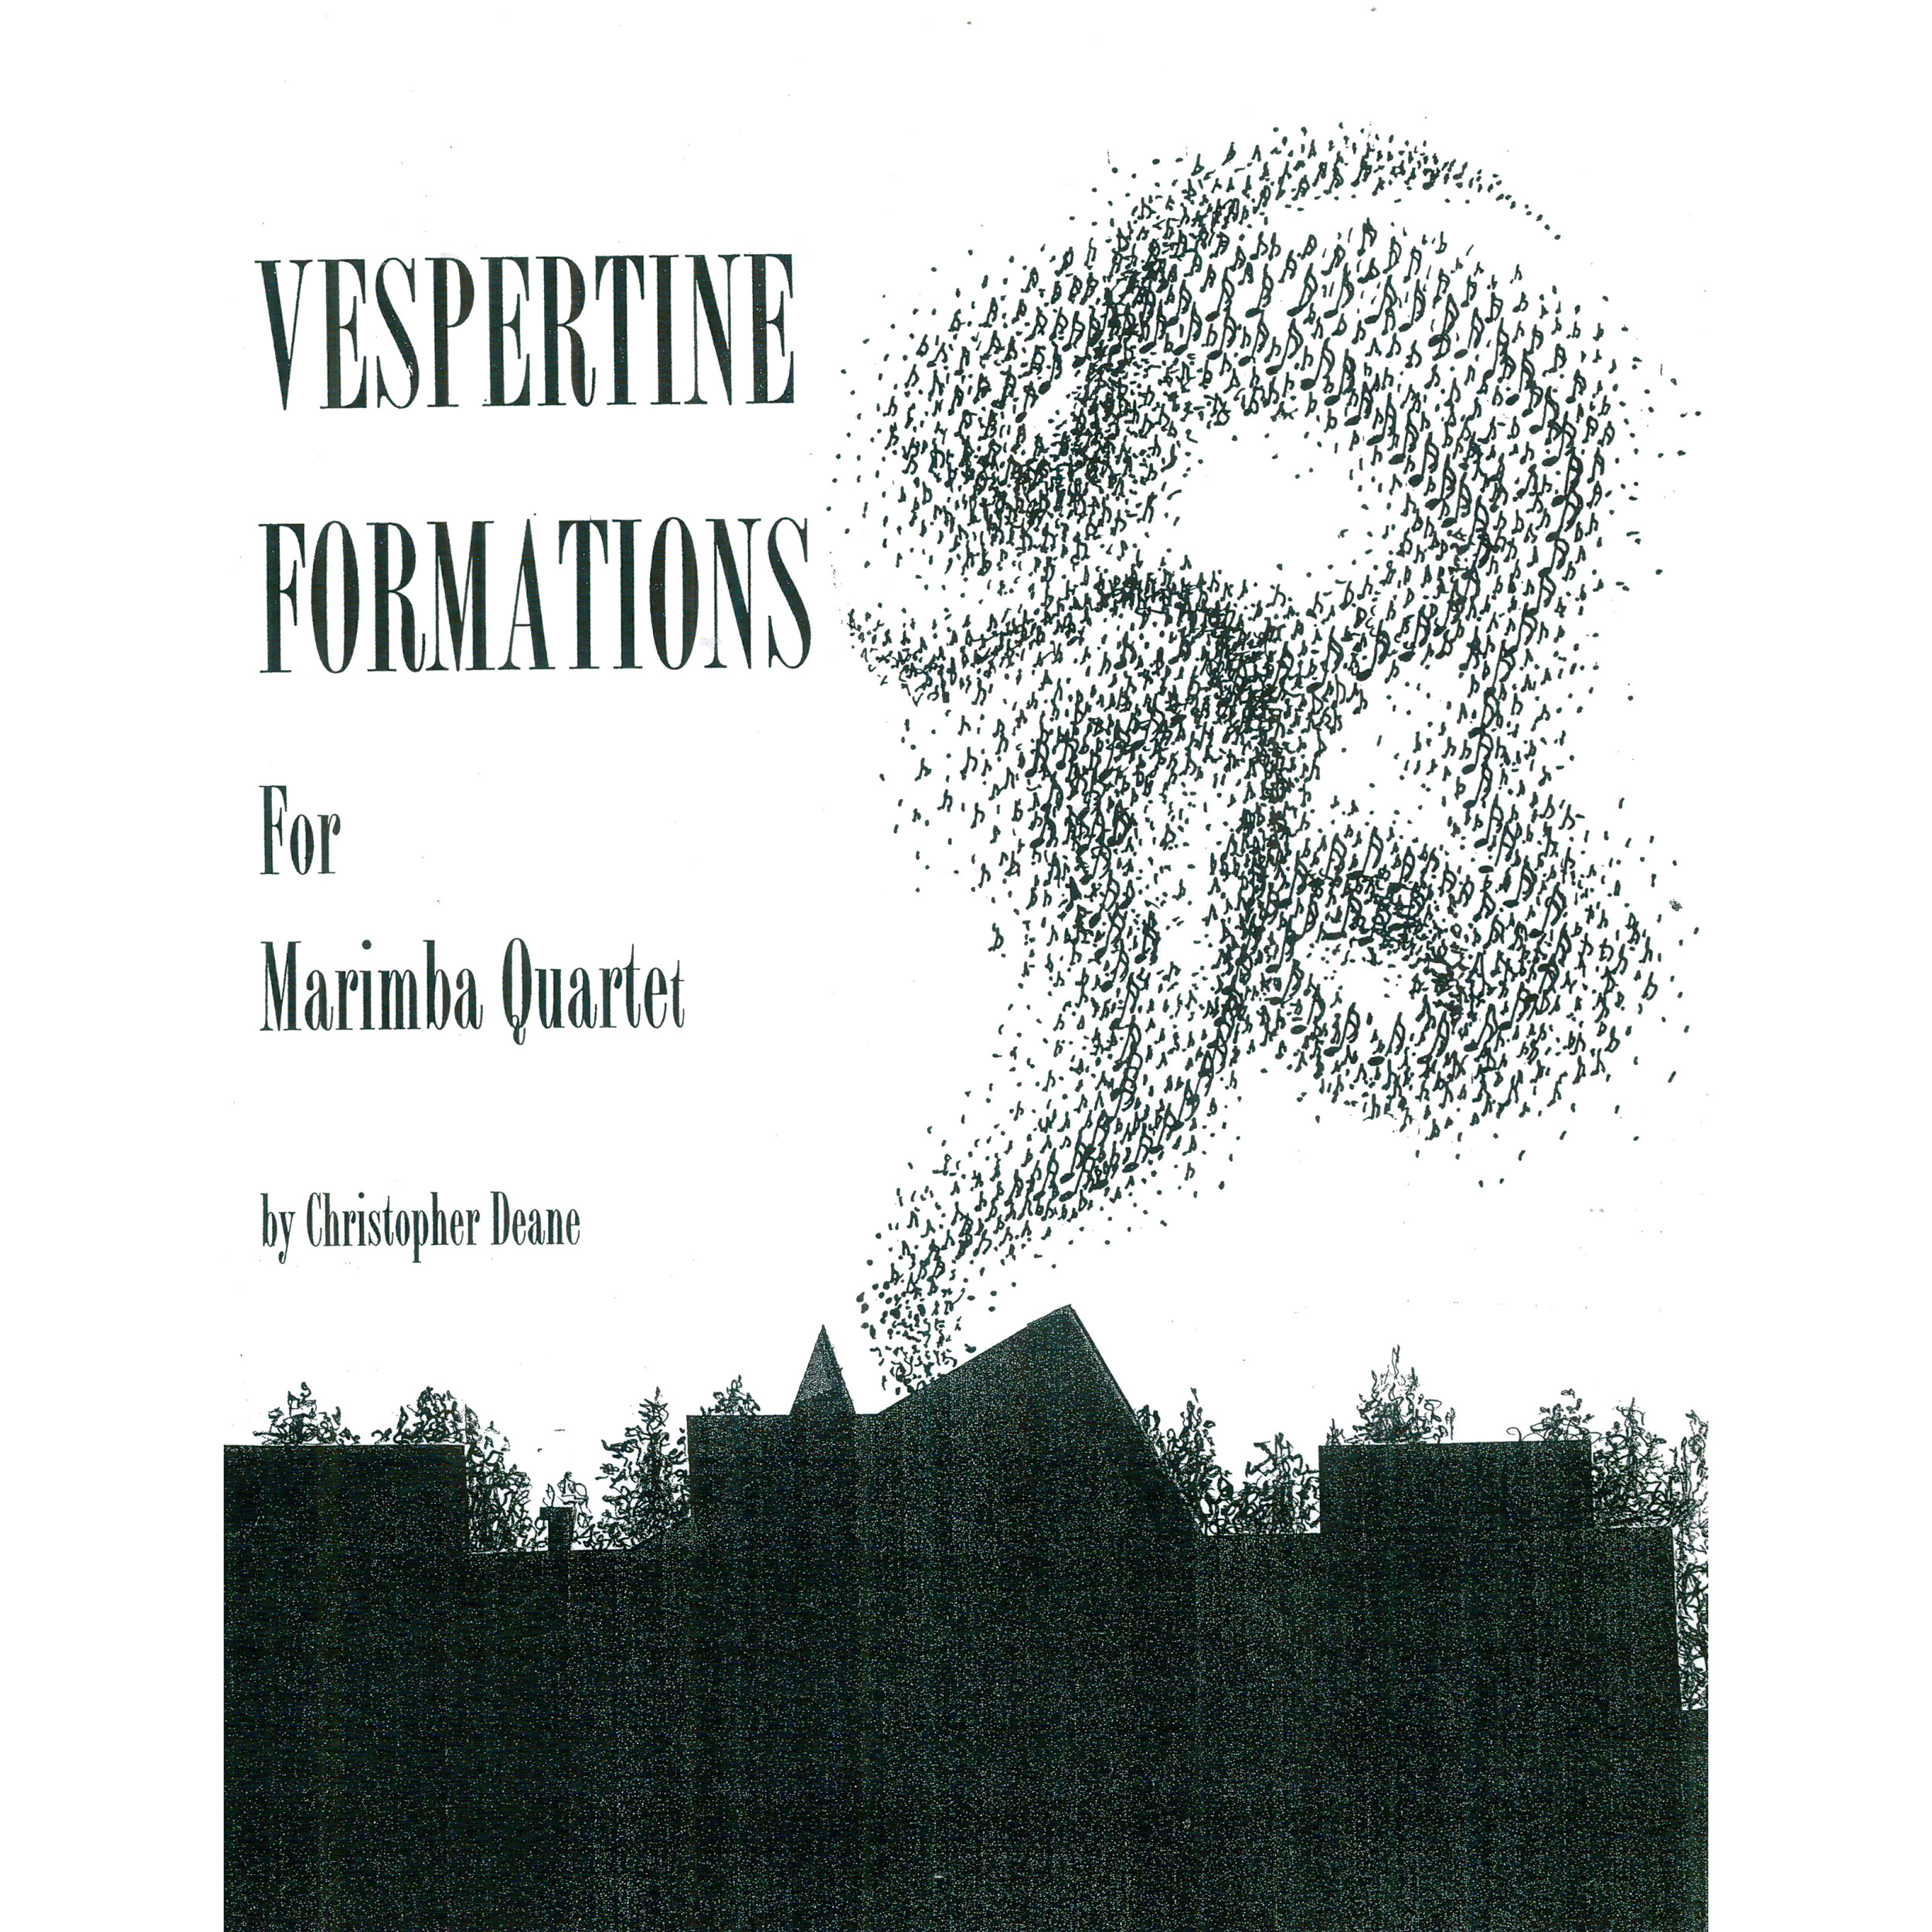 Vespertine Formations by Christopher Deane